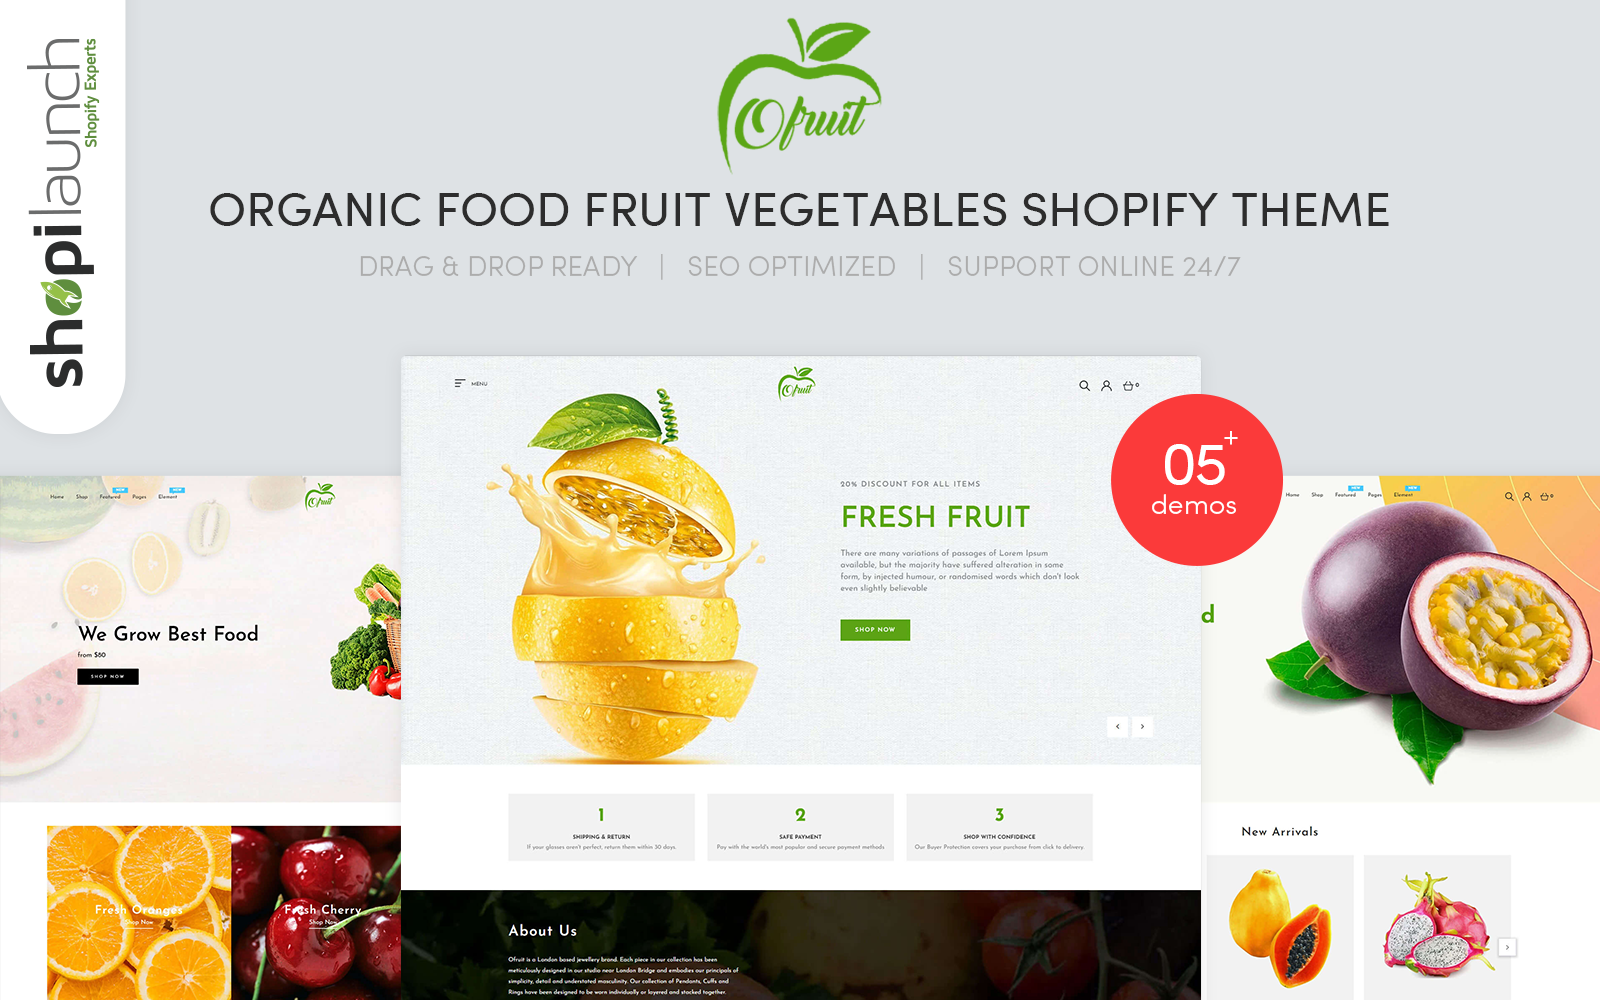 OFruit - Organic Food Fruit Vegetables Shopify Theme